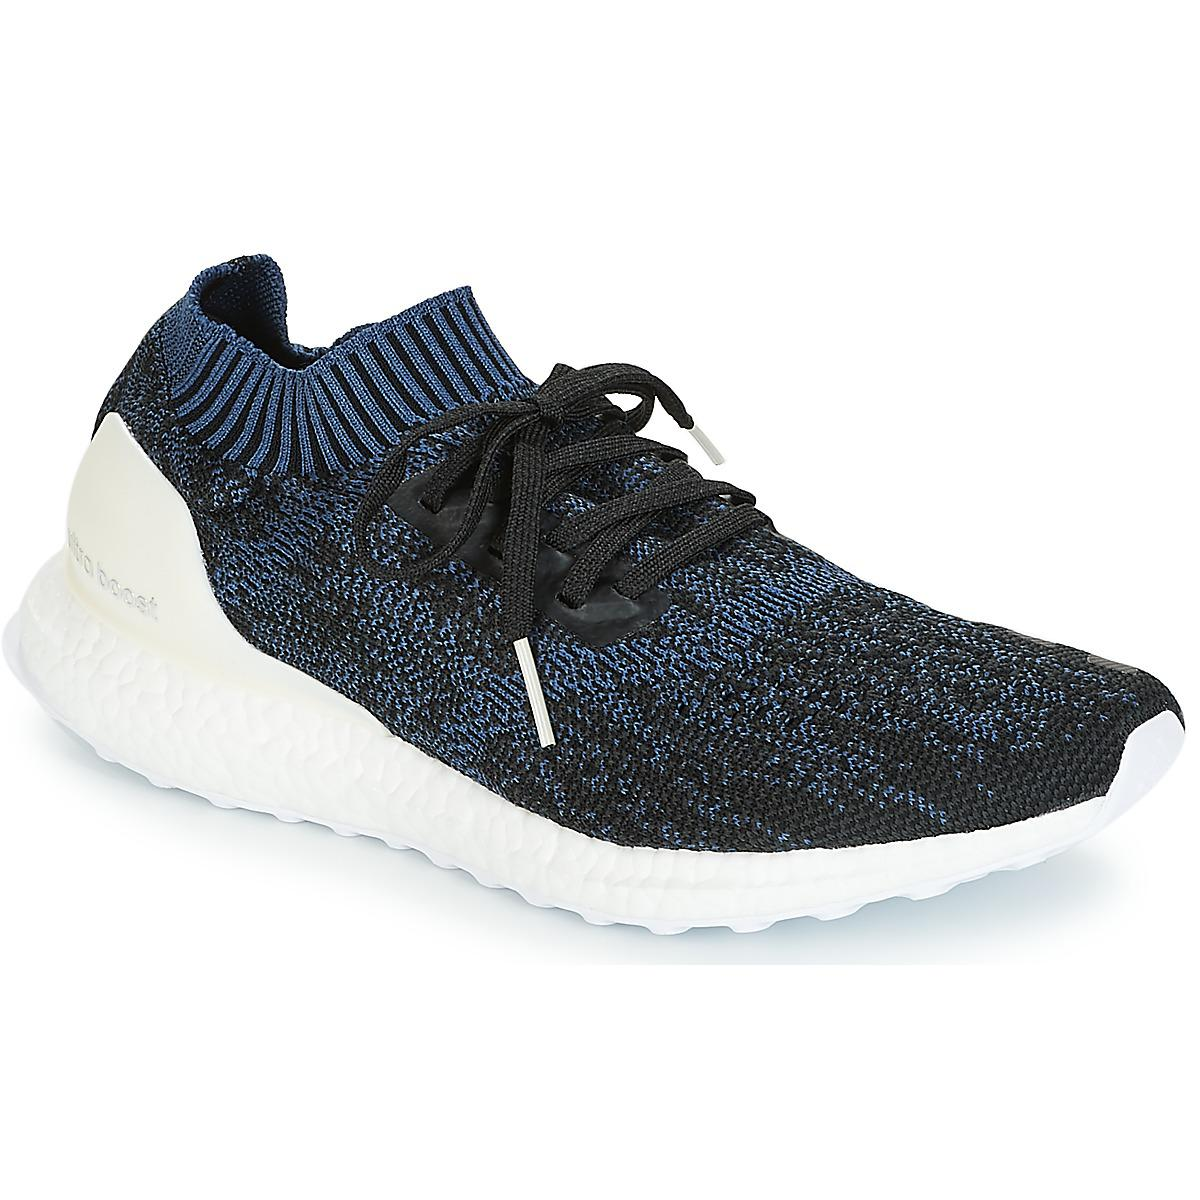 977618c1274c6 adidas Ultraboost Uncaged Men s Running Trainers In Blue in Blue for ...